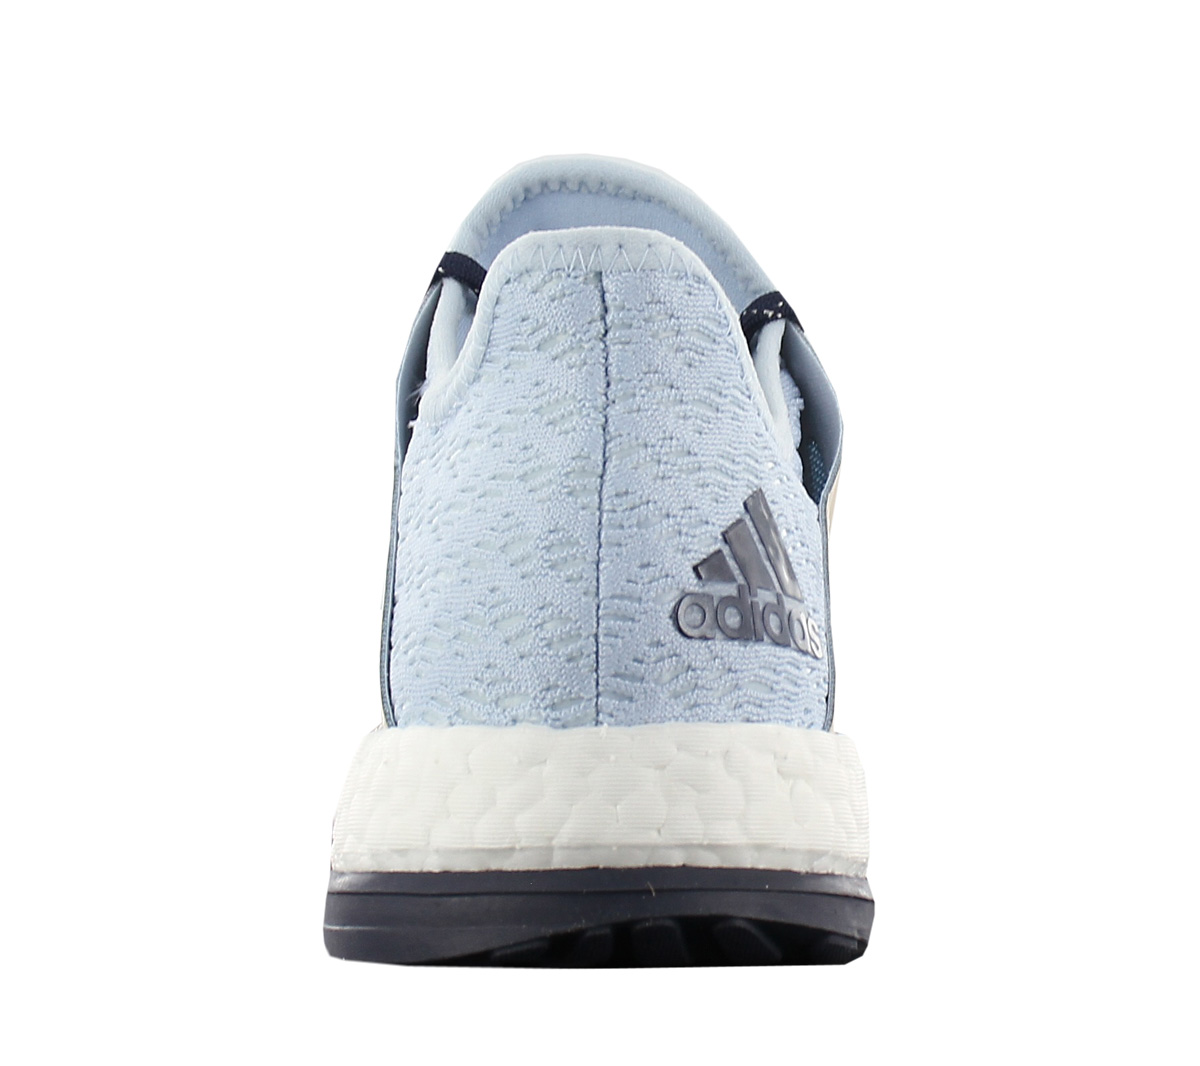 2988a244cb142 Adidas Pureboost Xpose Clima Ladies Running Shoes Climacool Boost ...